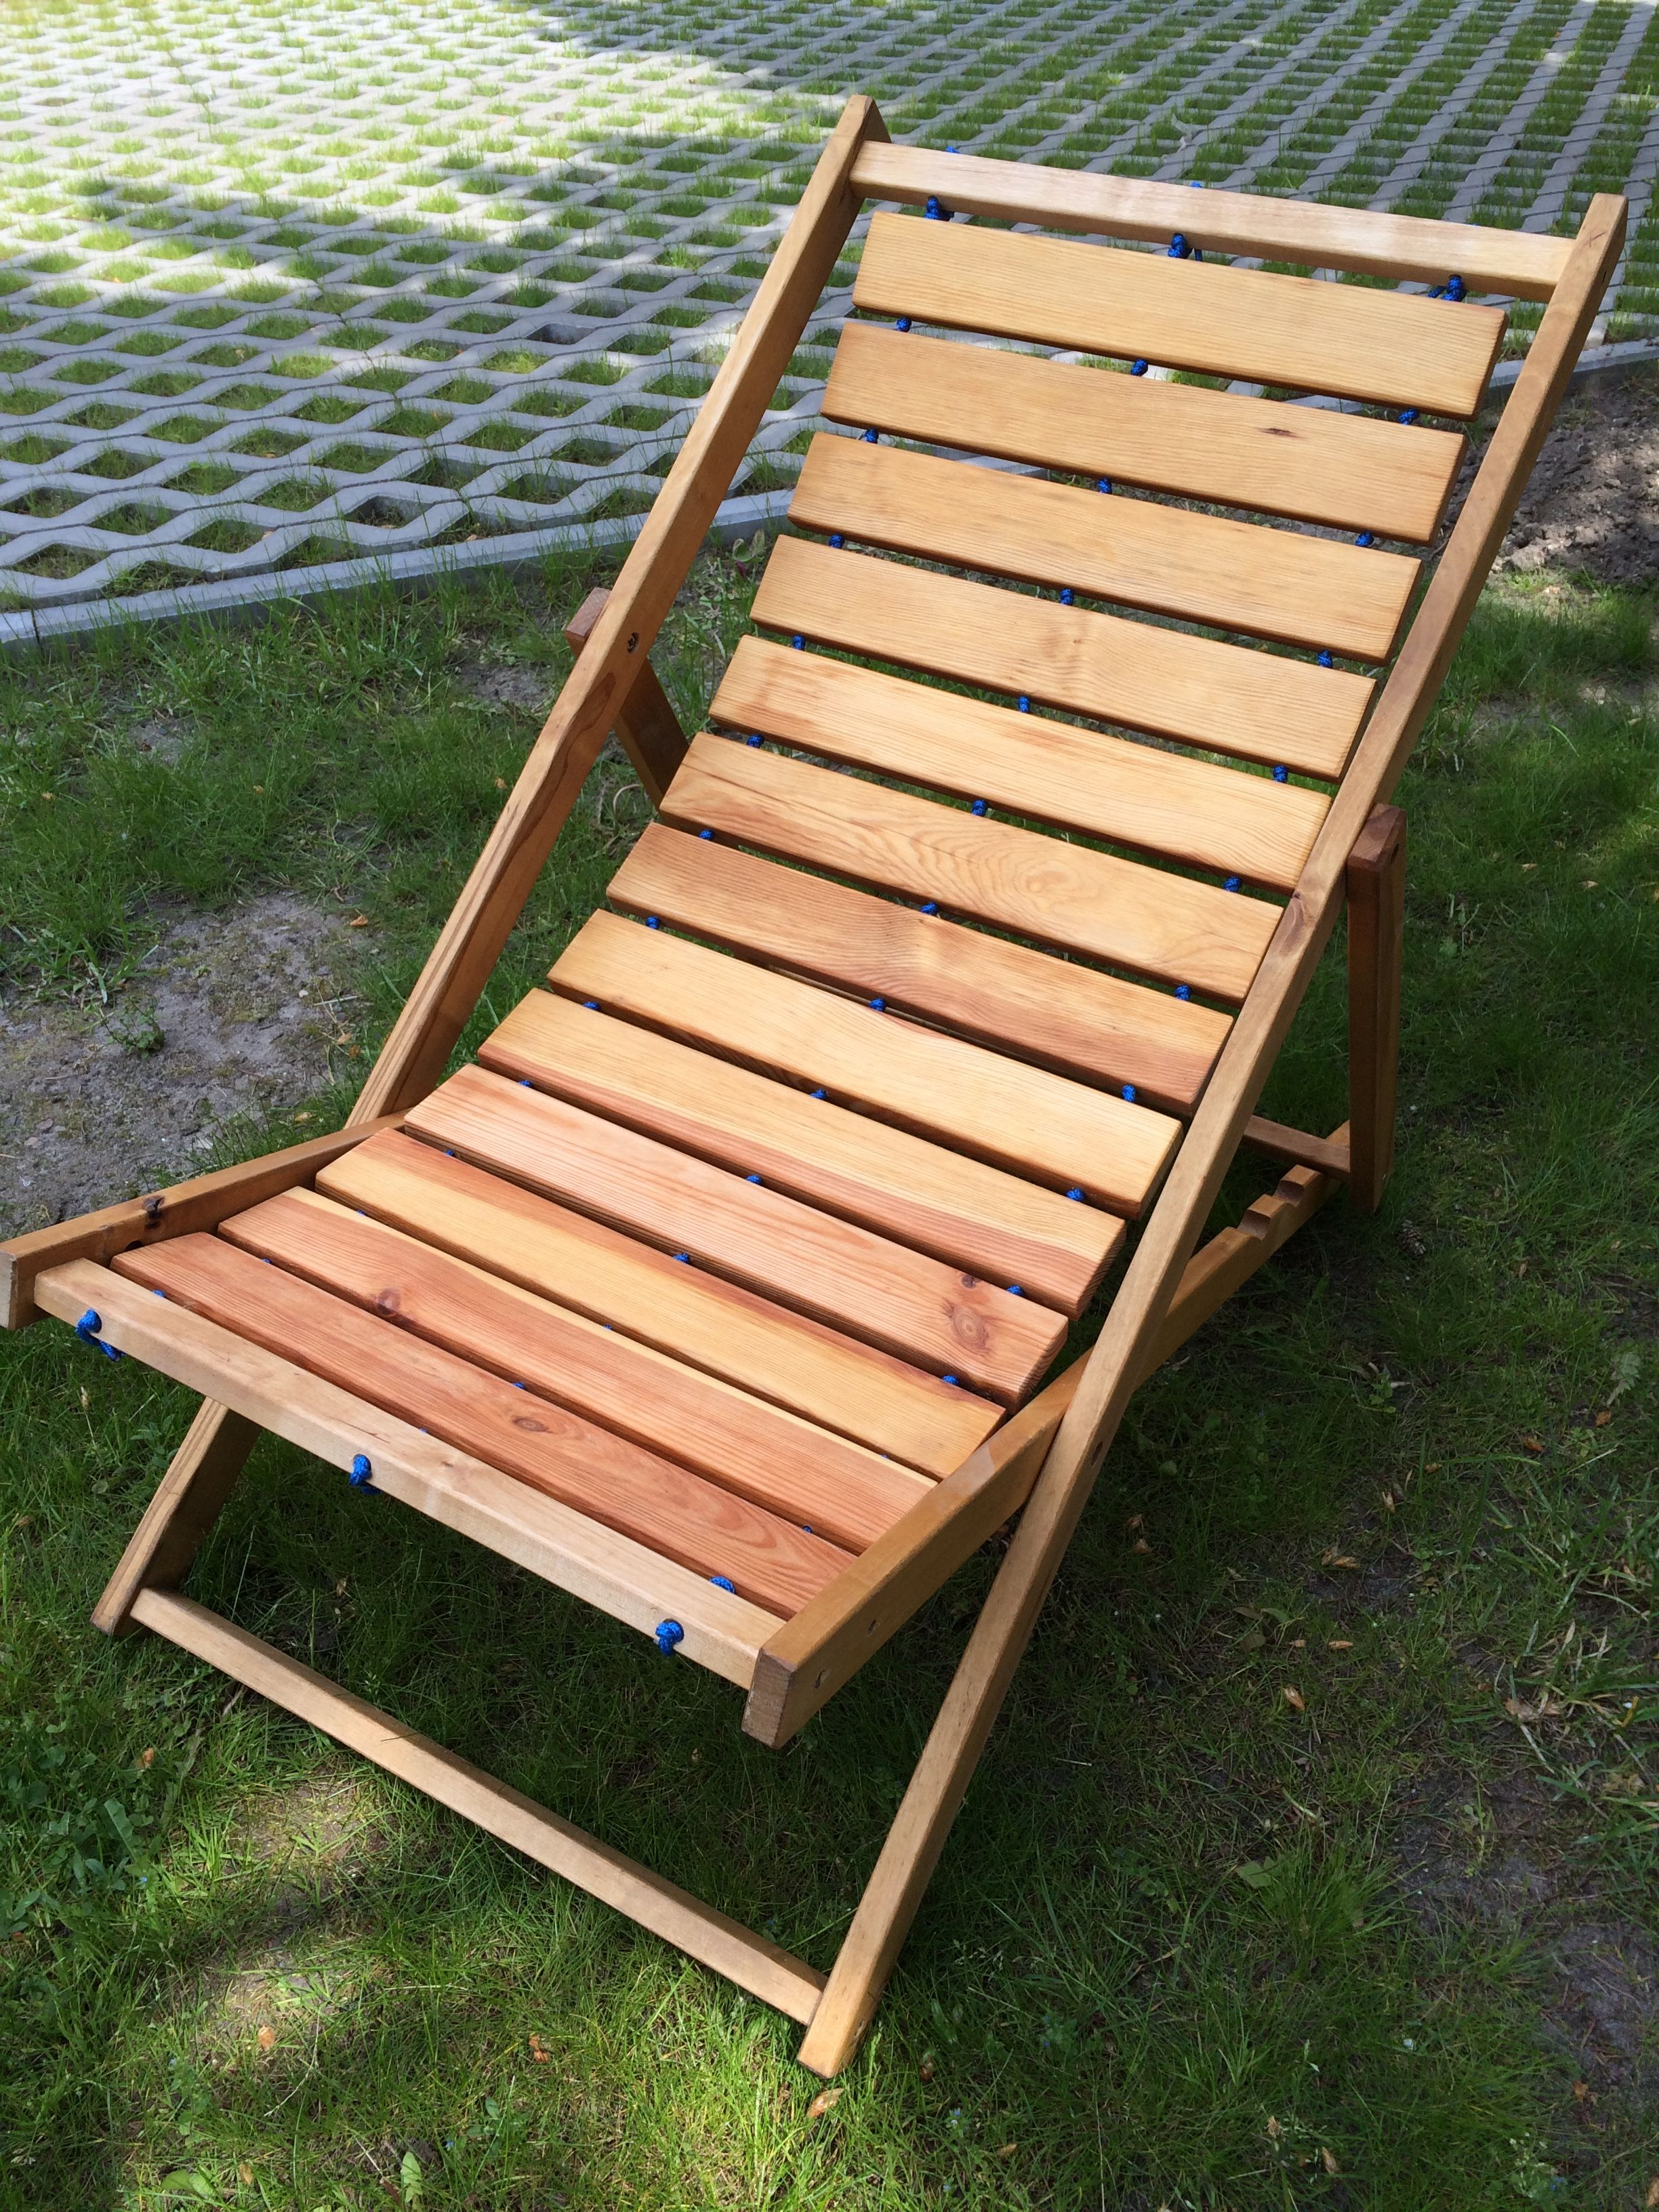 DIY scrapwood sunbed / deck chair | DIY | Pinterest | Sillas ...